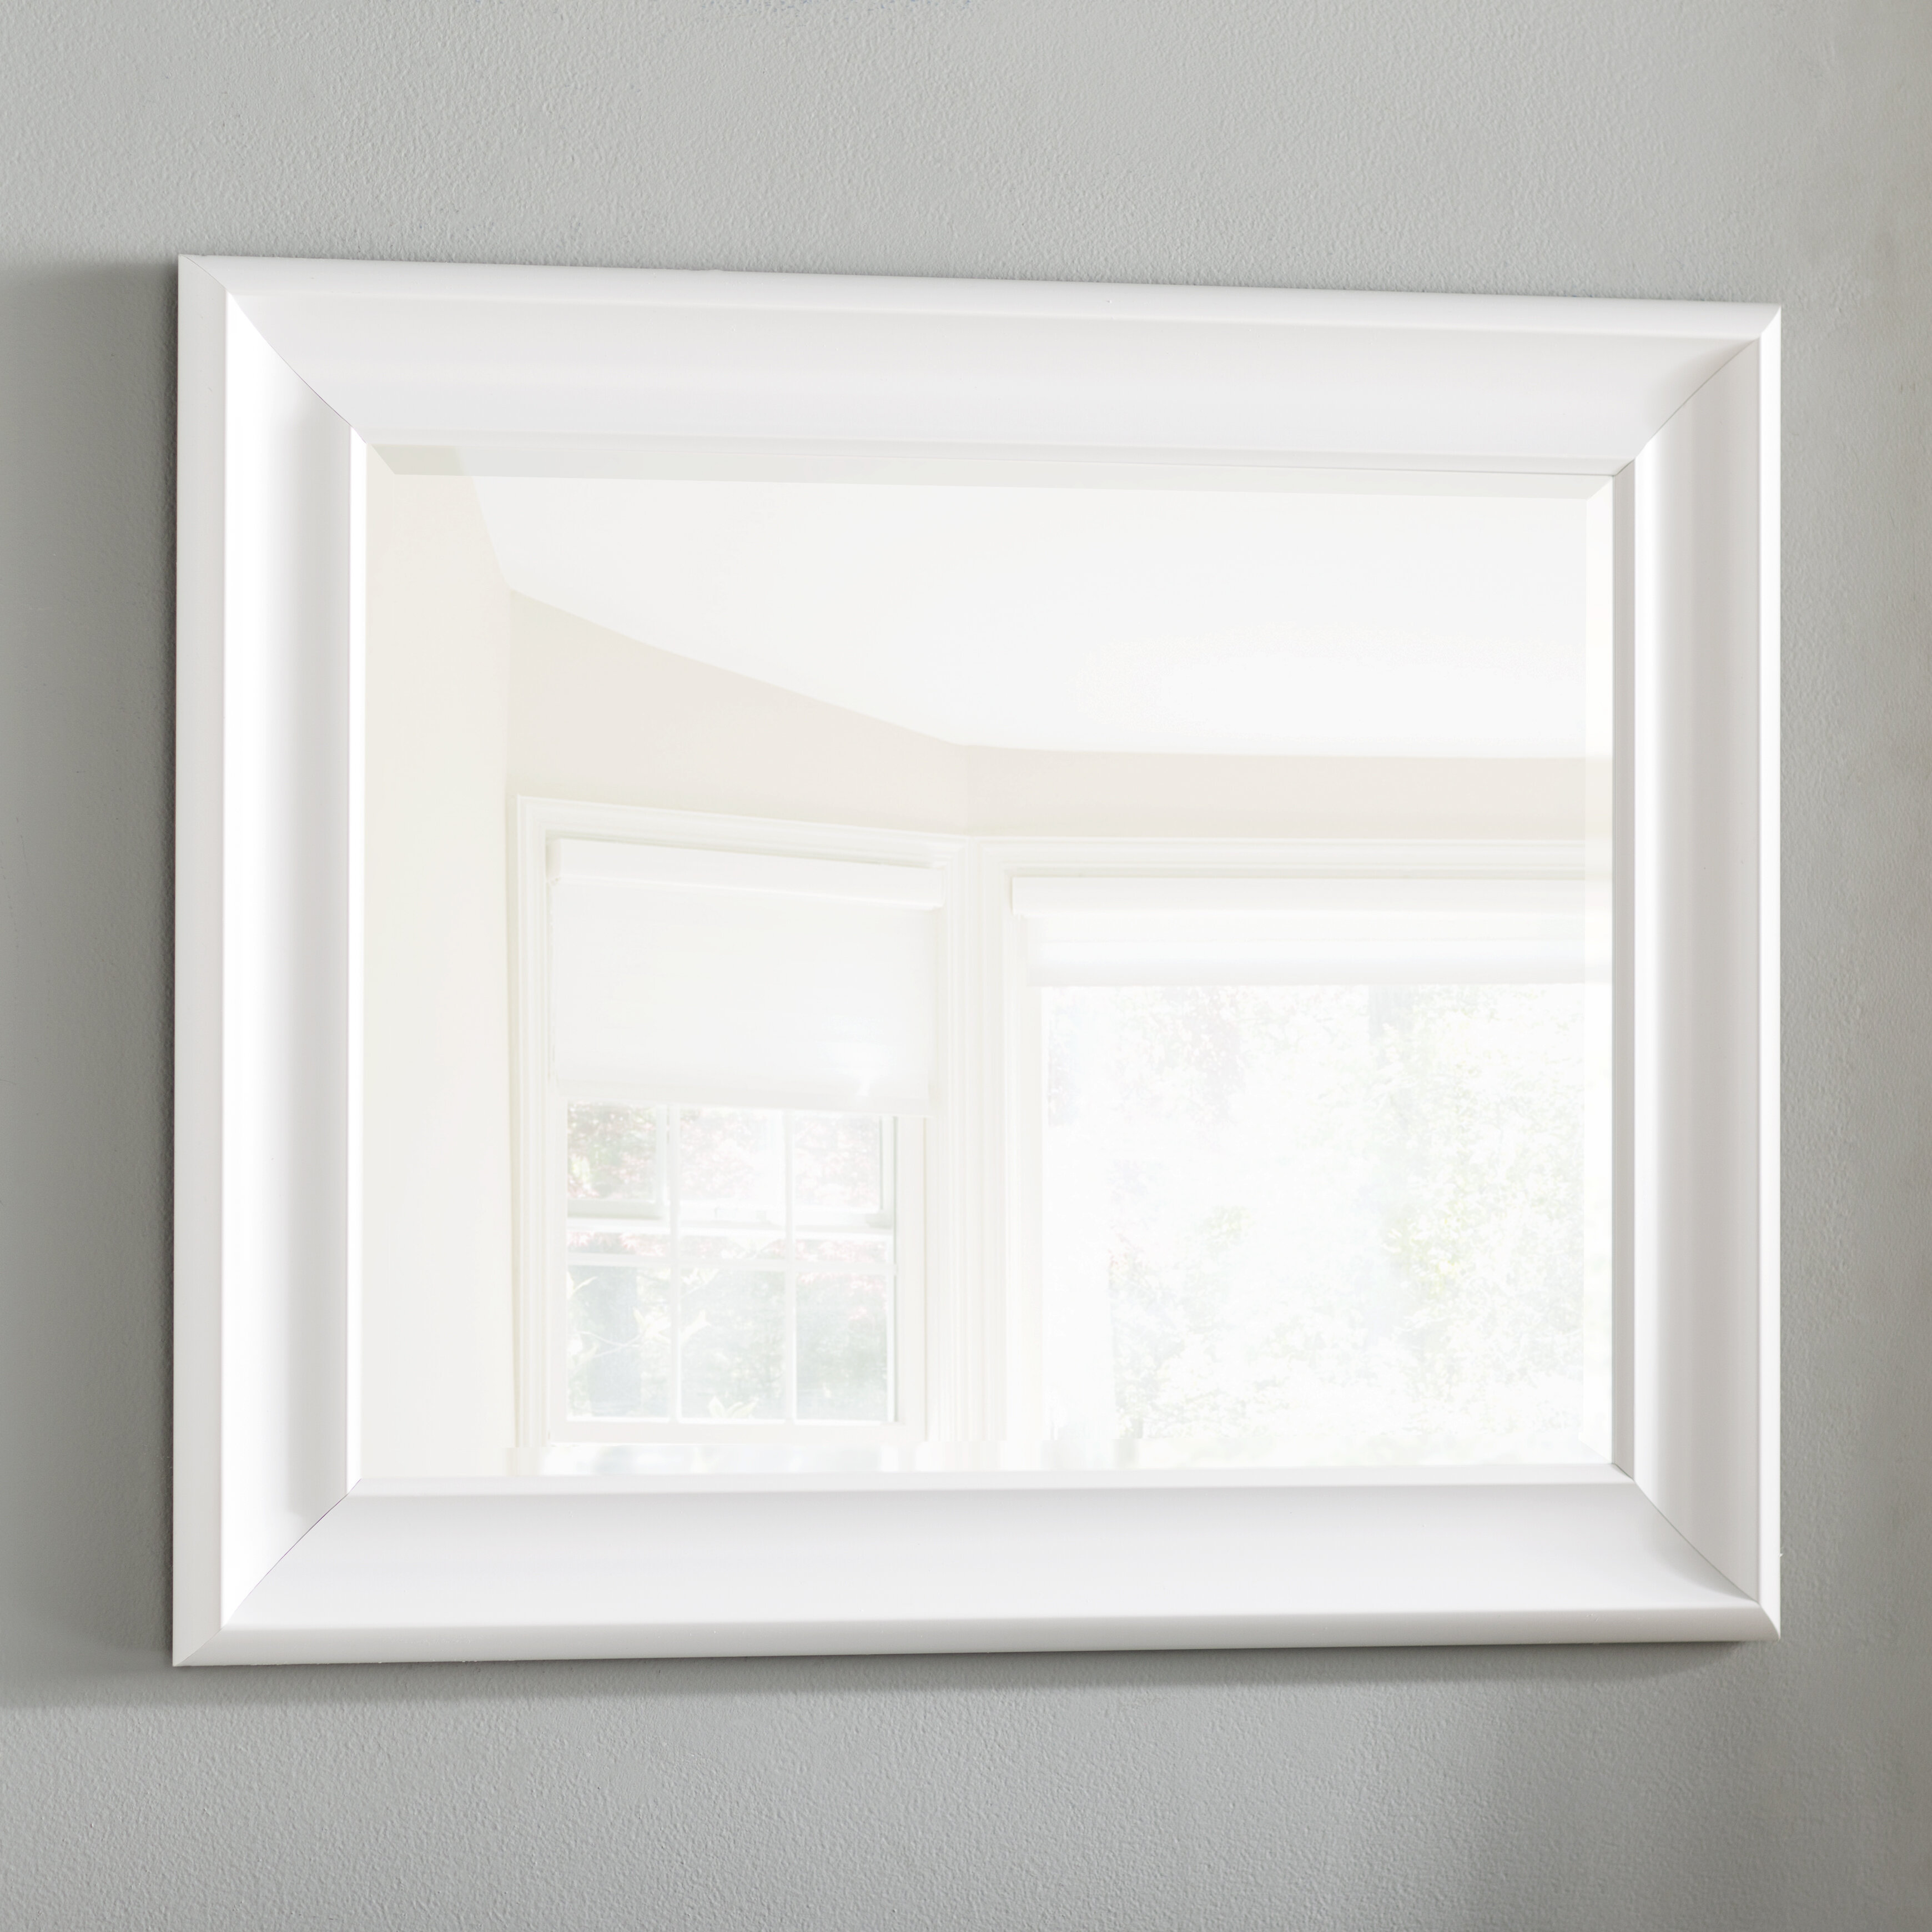 4f0d92bf64a8 Willa Arlo Interiors Northcutt Accent Mirror   Reviews